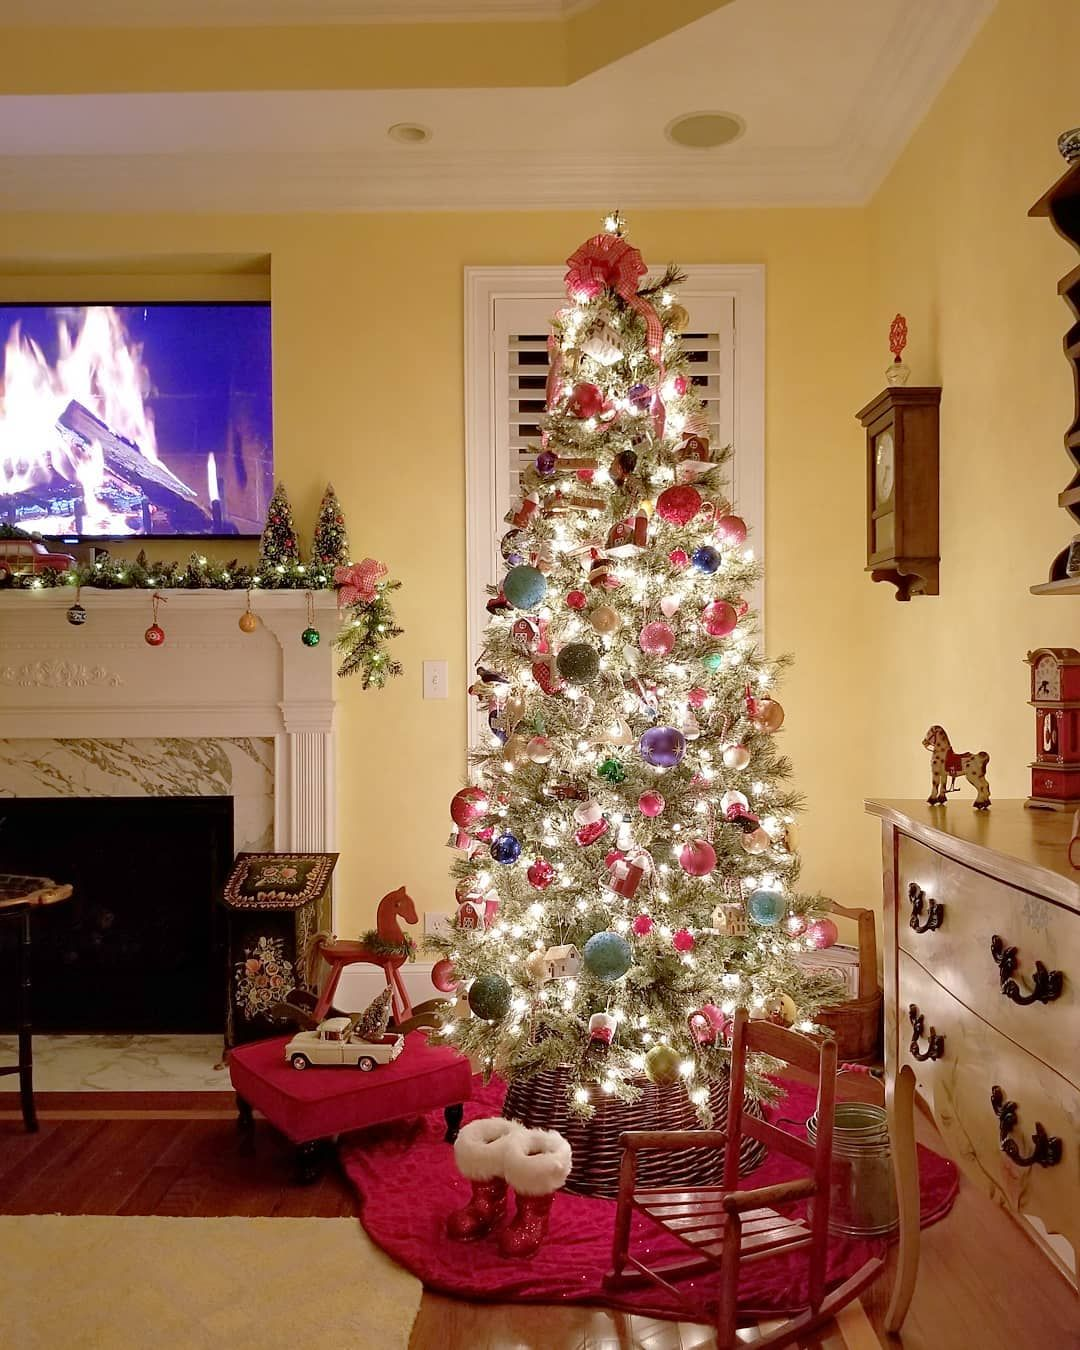 Happy Days Farm Love Watching The Virtual Yule Log On Tv While Sitting By The Christmas Tree Christmastree Happy Day Farm Country Christmas Christmas Tree